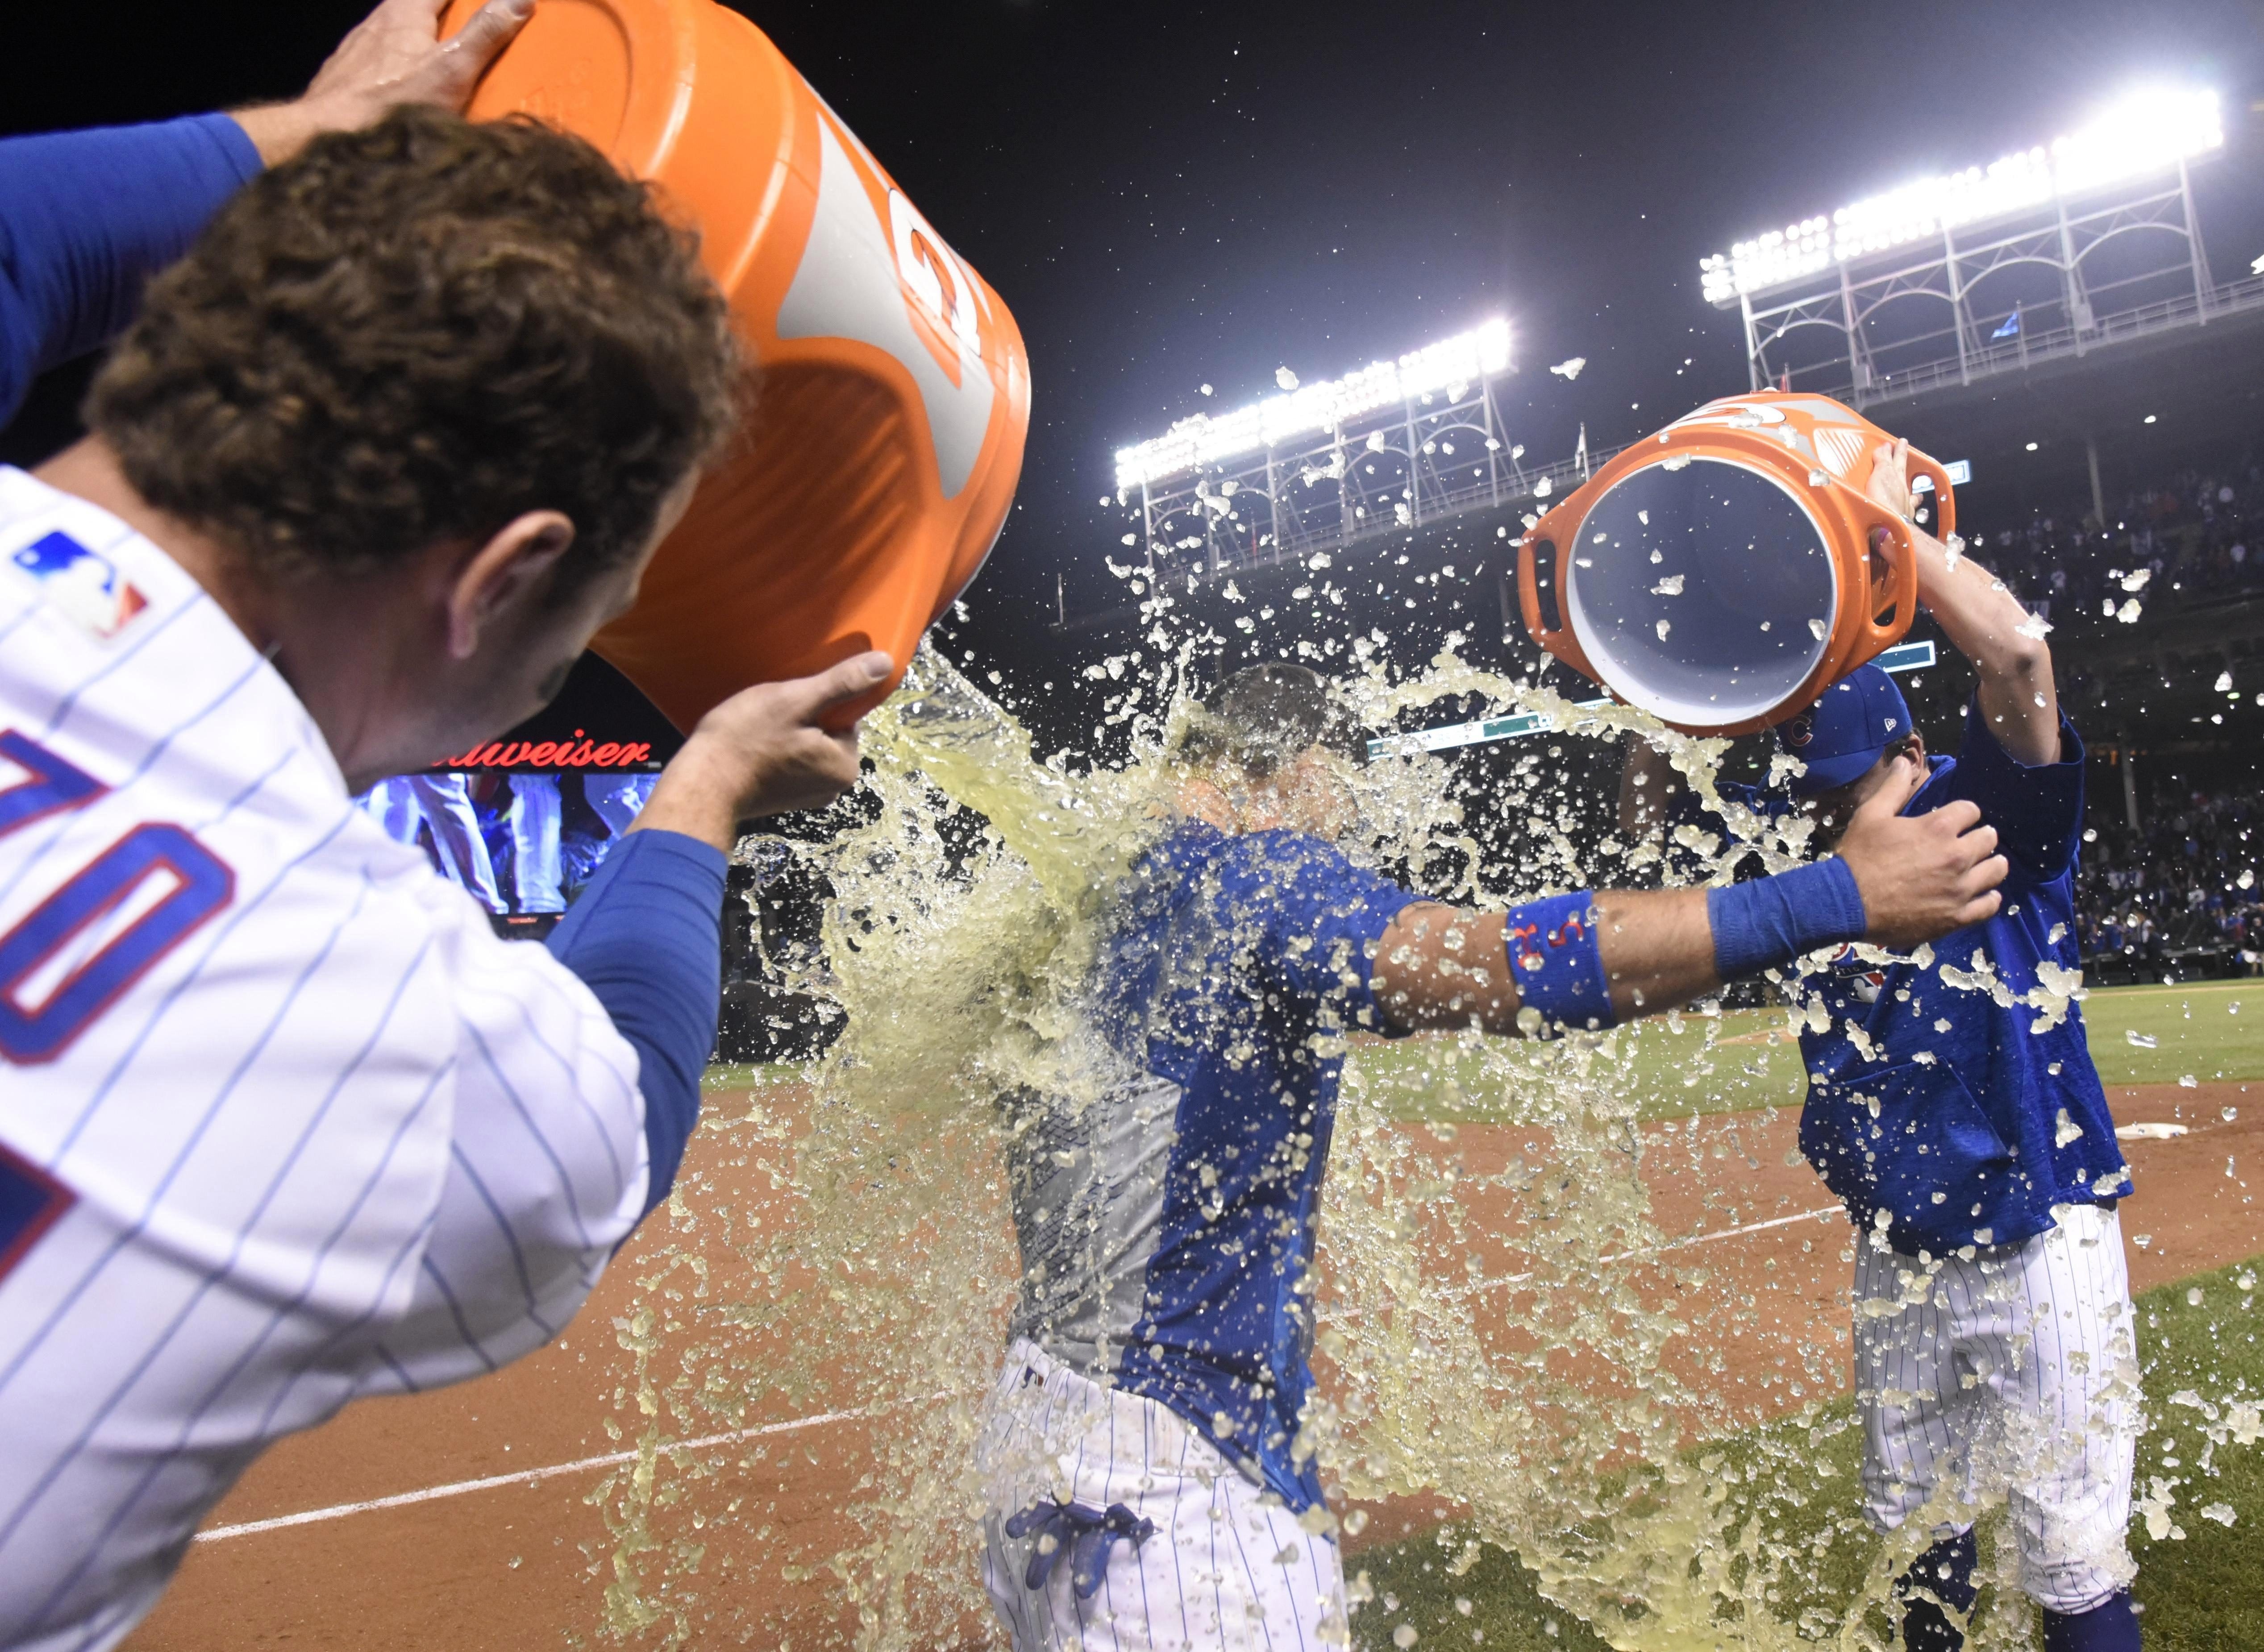 Chicago celebrated as they were through to compete for the National League Central championship